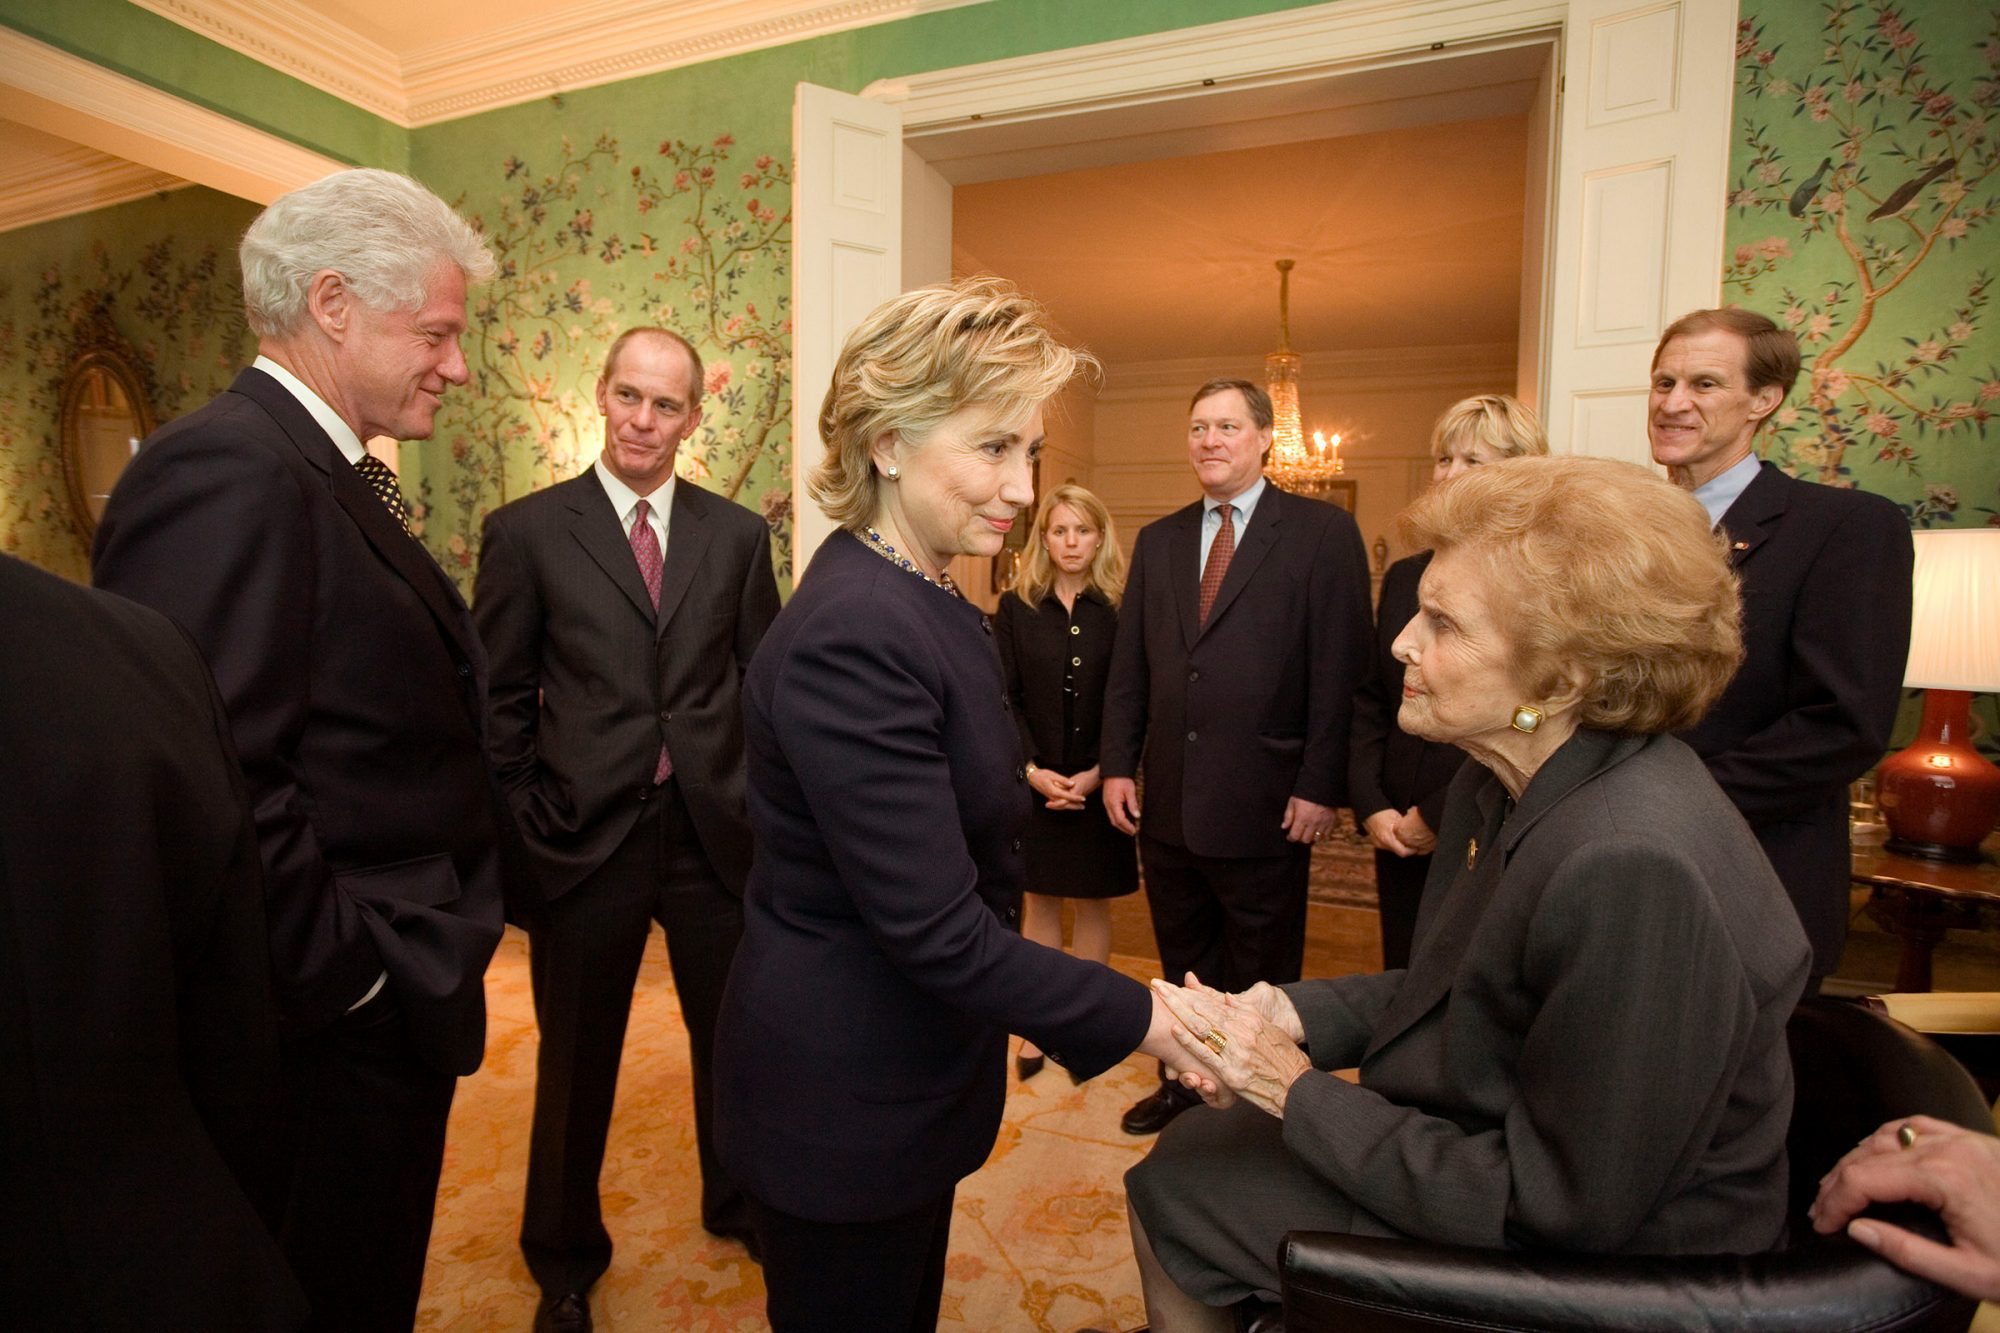 Former First Lady Betty Ford greets Sen. Hillary Clinton and former President Bill Clinton at the Blair House on January 1, 2007 in Washington, DC